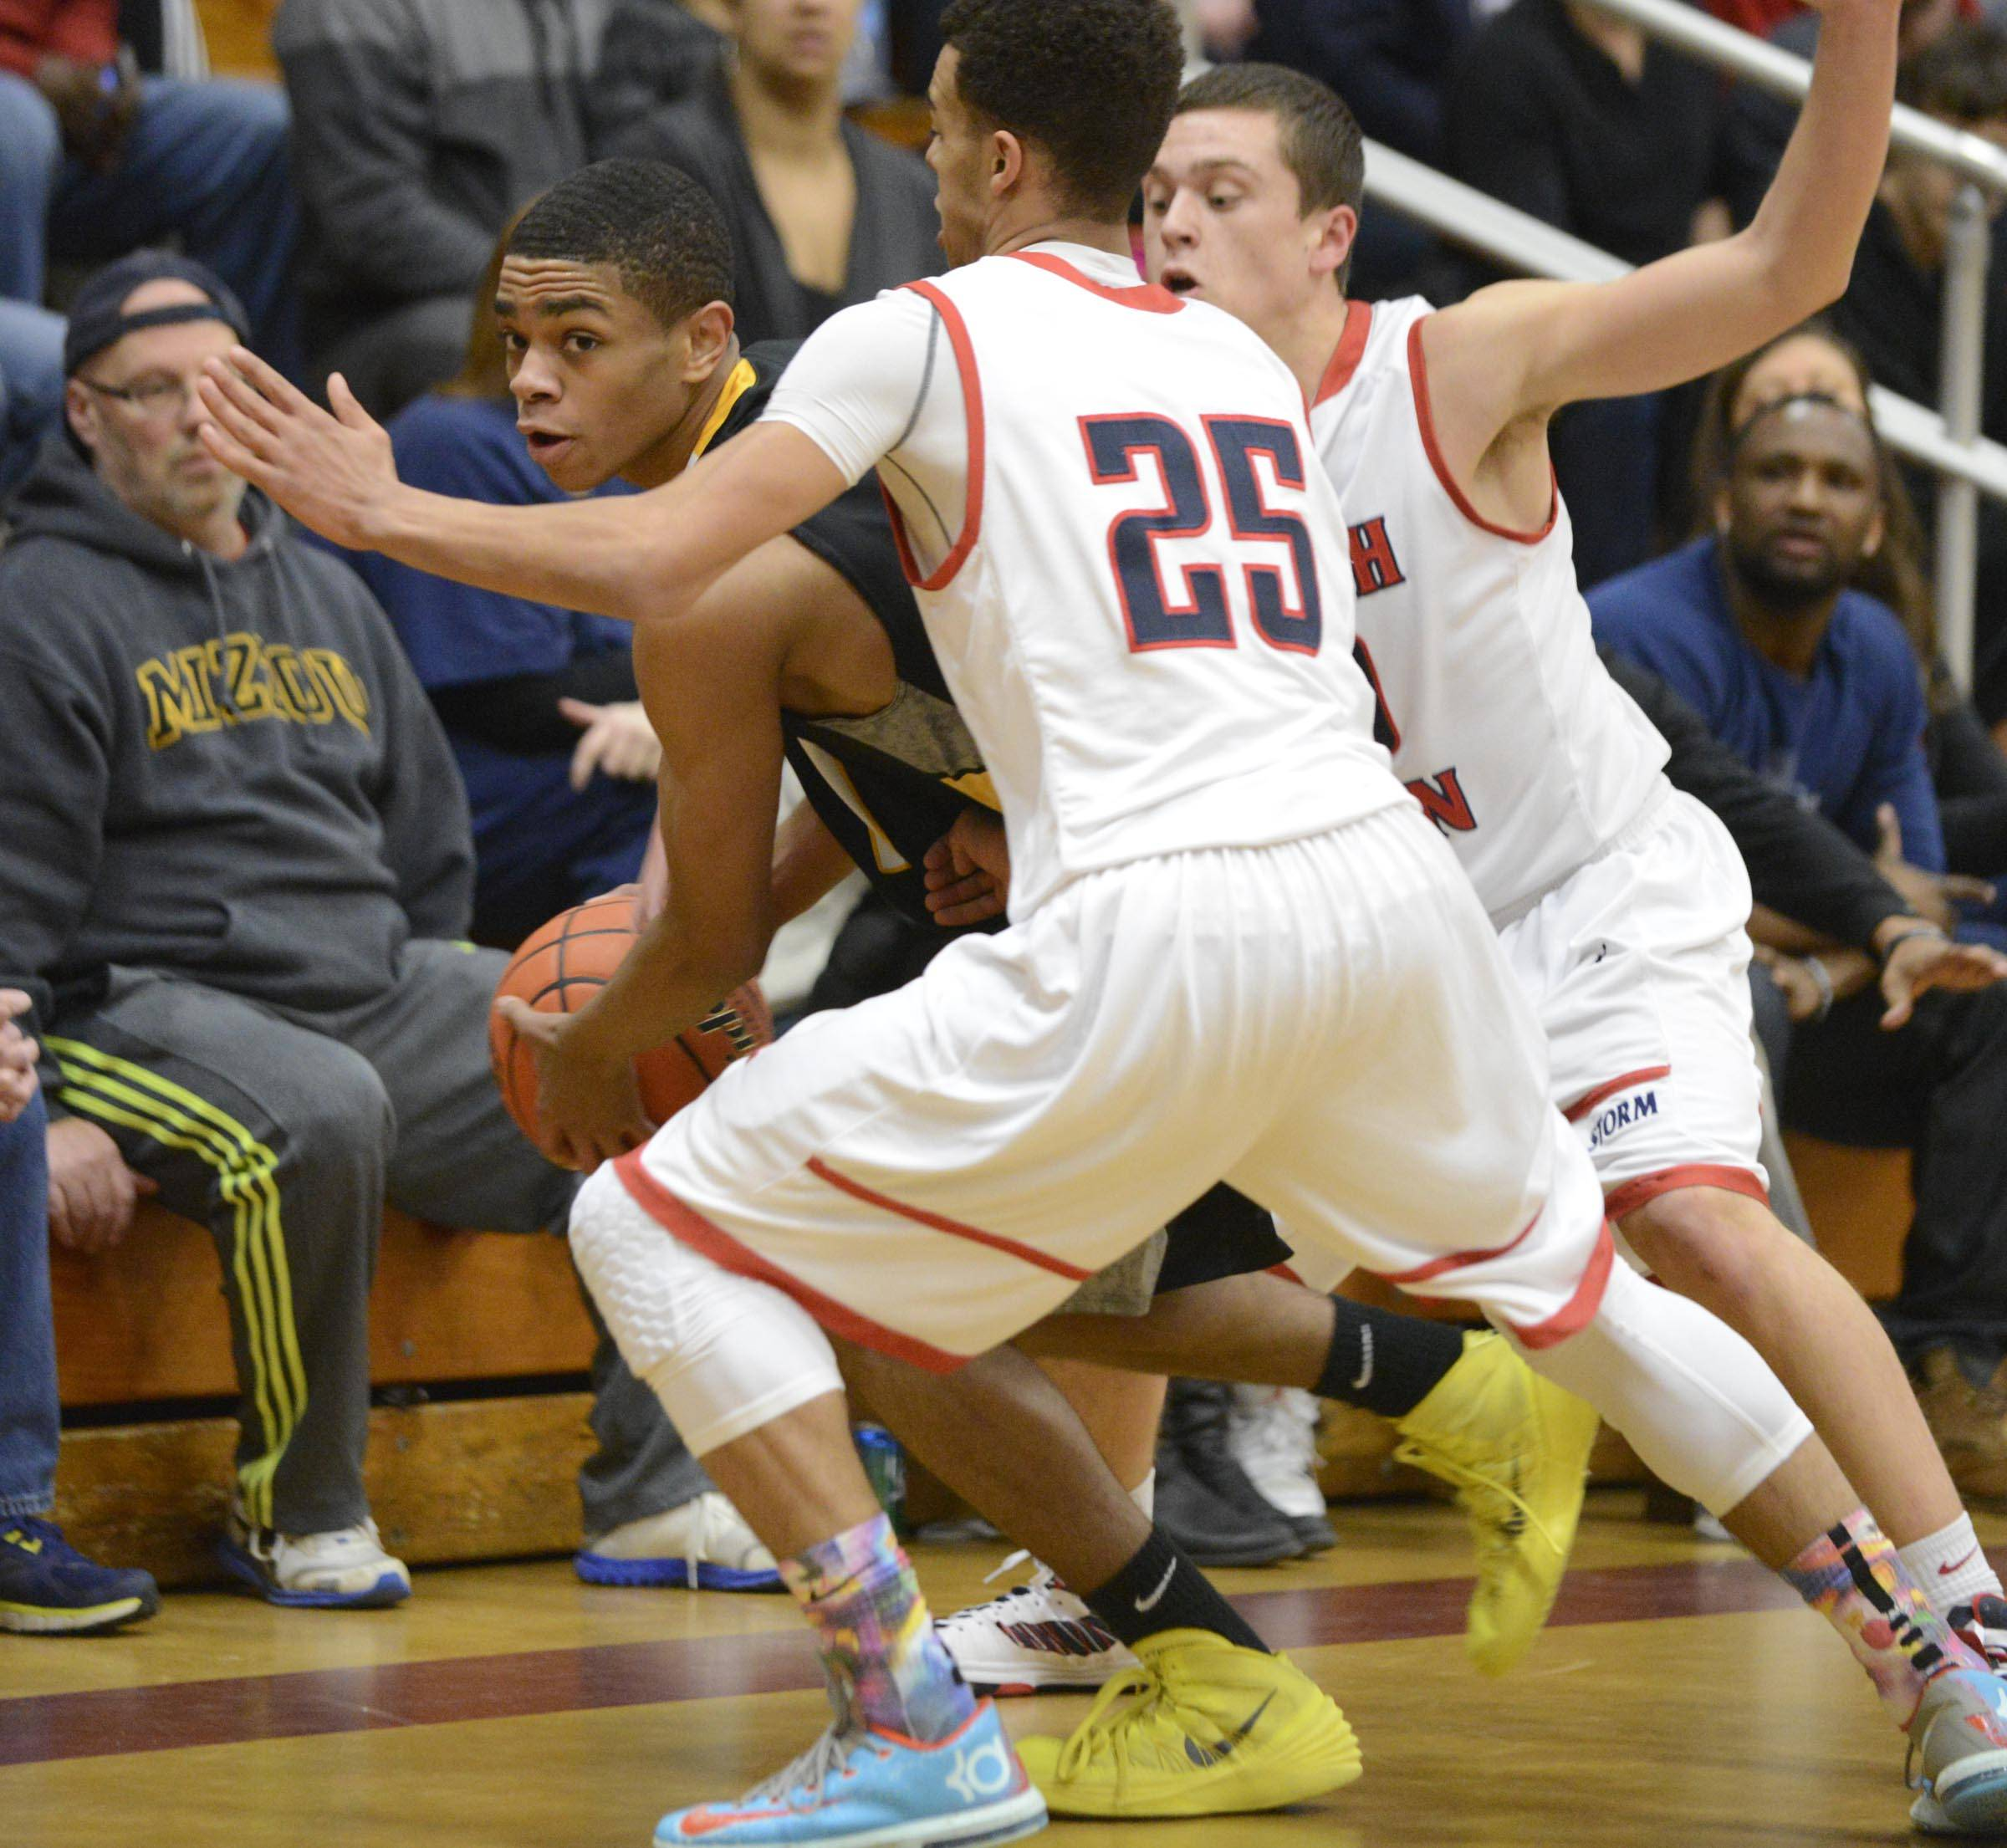 John Starks/jstarks@dailyherald.comSouth Elgin's Darius Wells and Matt McClure, right, double team Jacobs' Kenton Mack Wednesday in the Elgin 4A sectional semifinal.